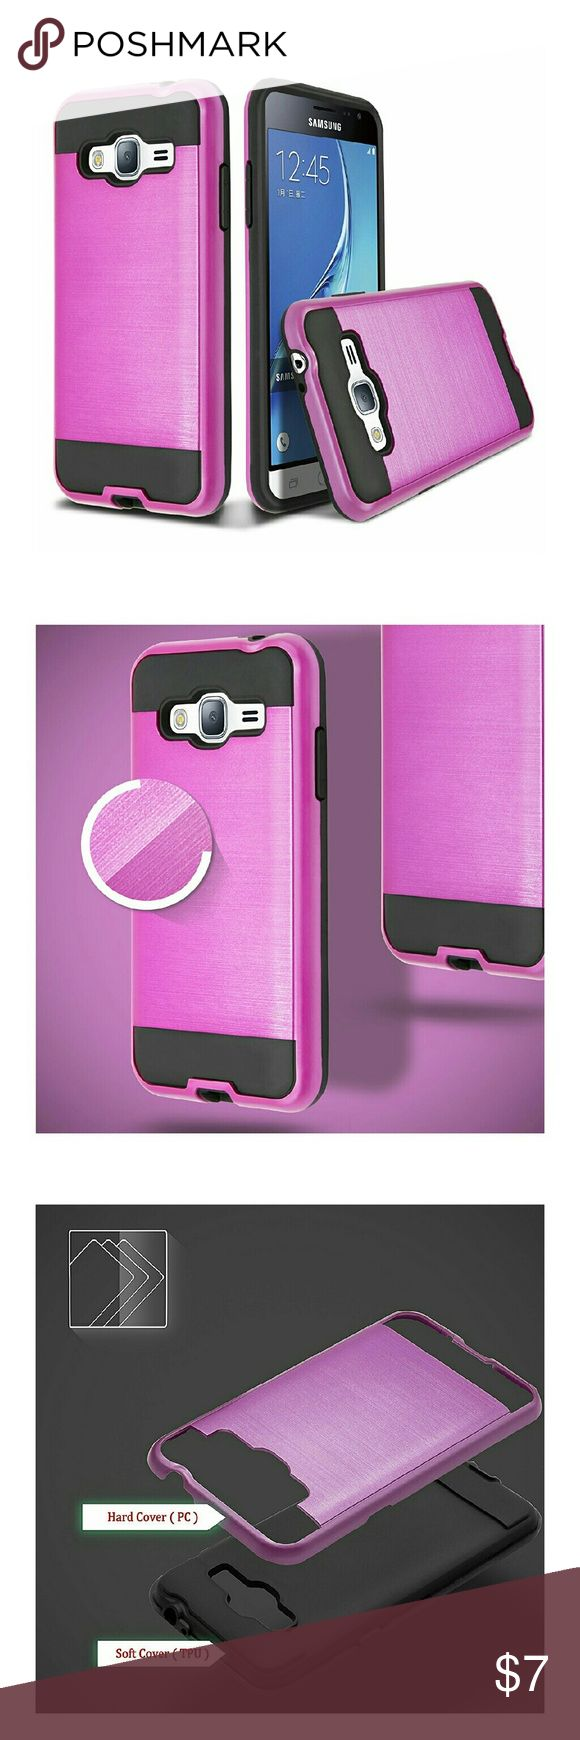 Samsung Galaxy j 7 case Hybrid hot pink  cases for Galaxy J7 brand new  ? 2015 phone. 4th  picture shows the phone style it'll fit Samsung  Accessories Phone Cases